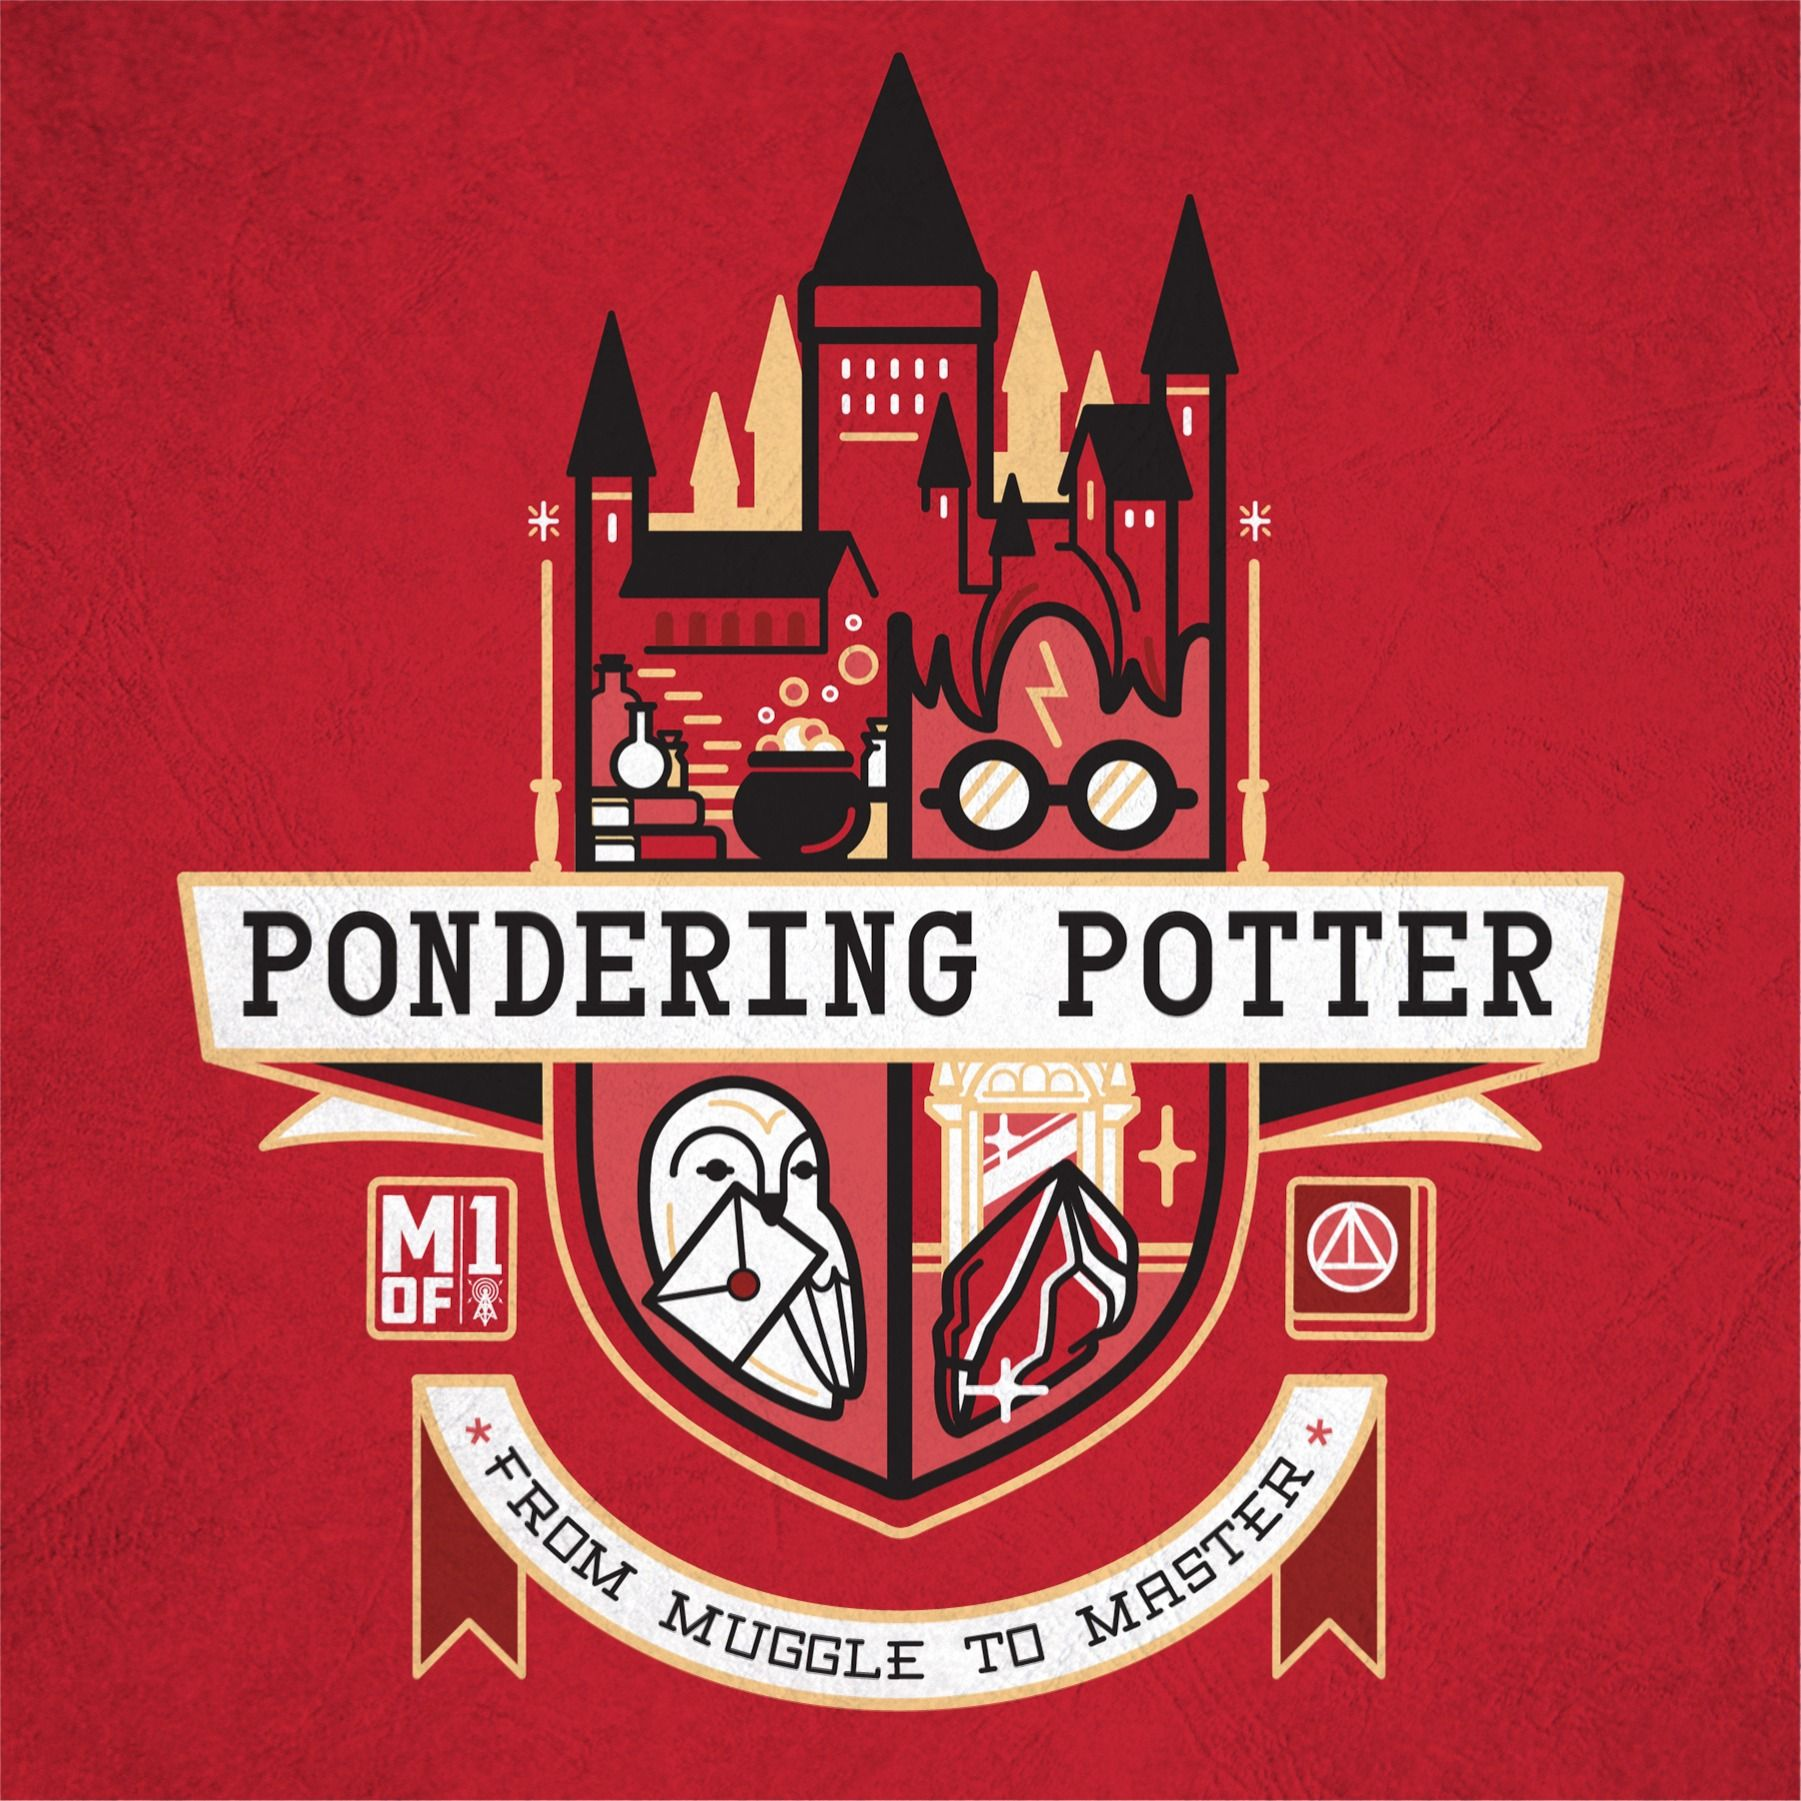 Pondering Potter and the Sorcerer's Stone